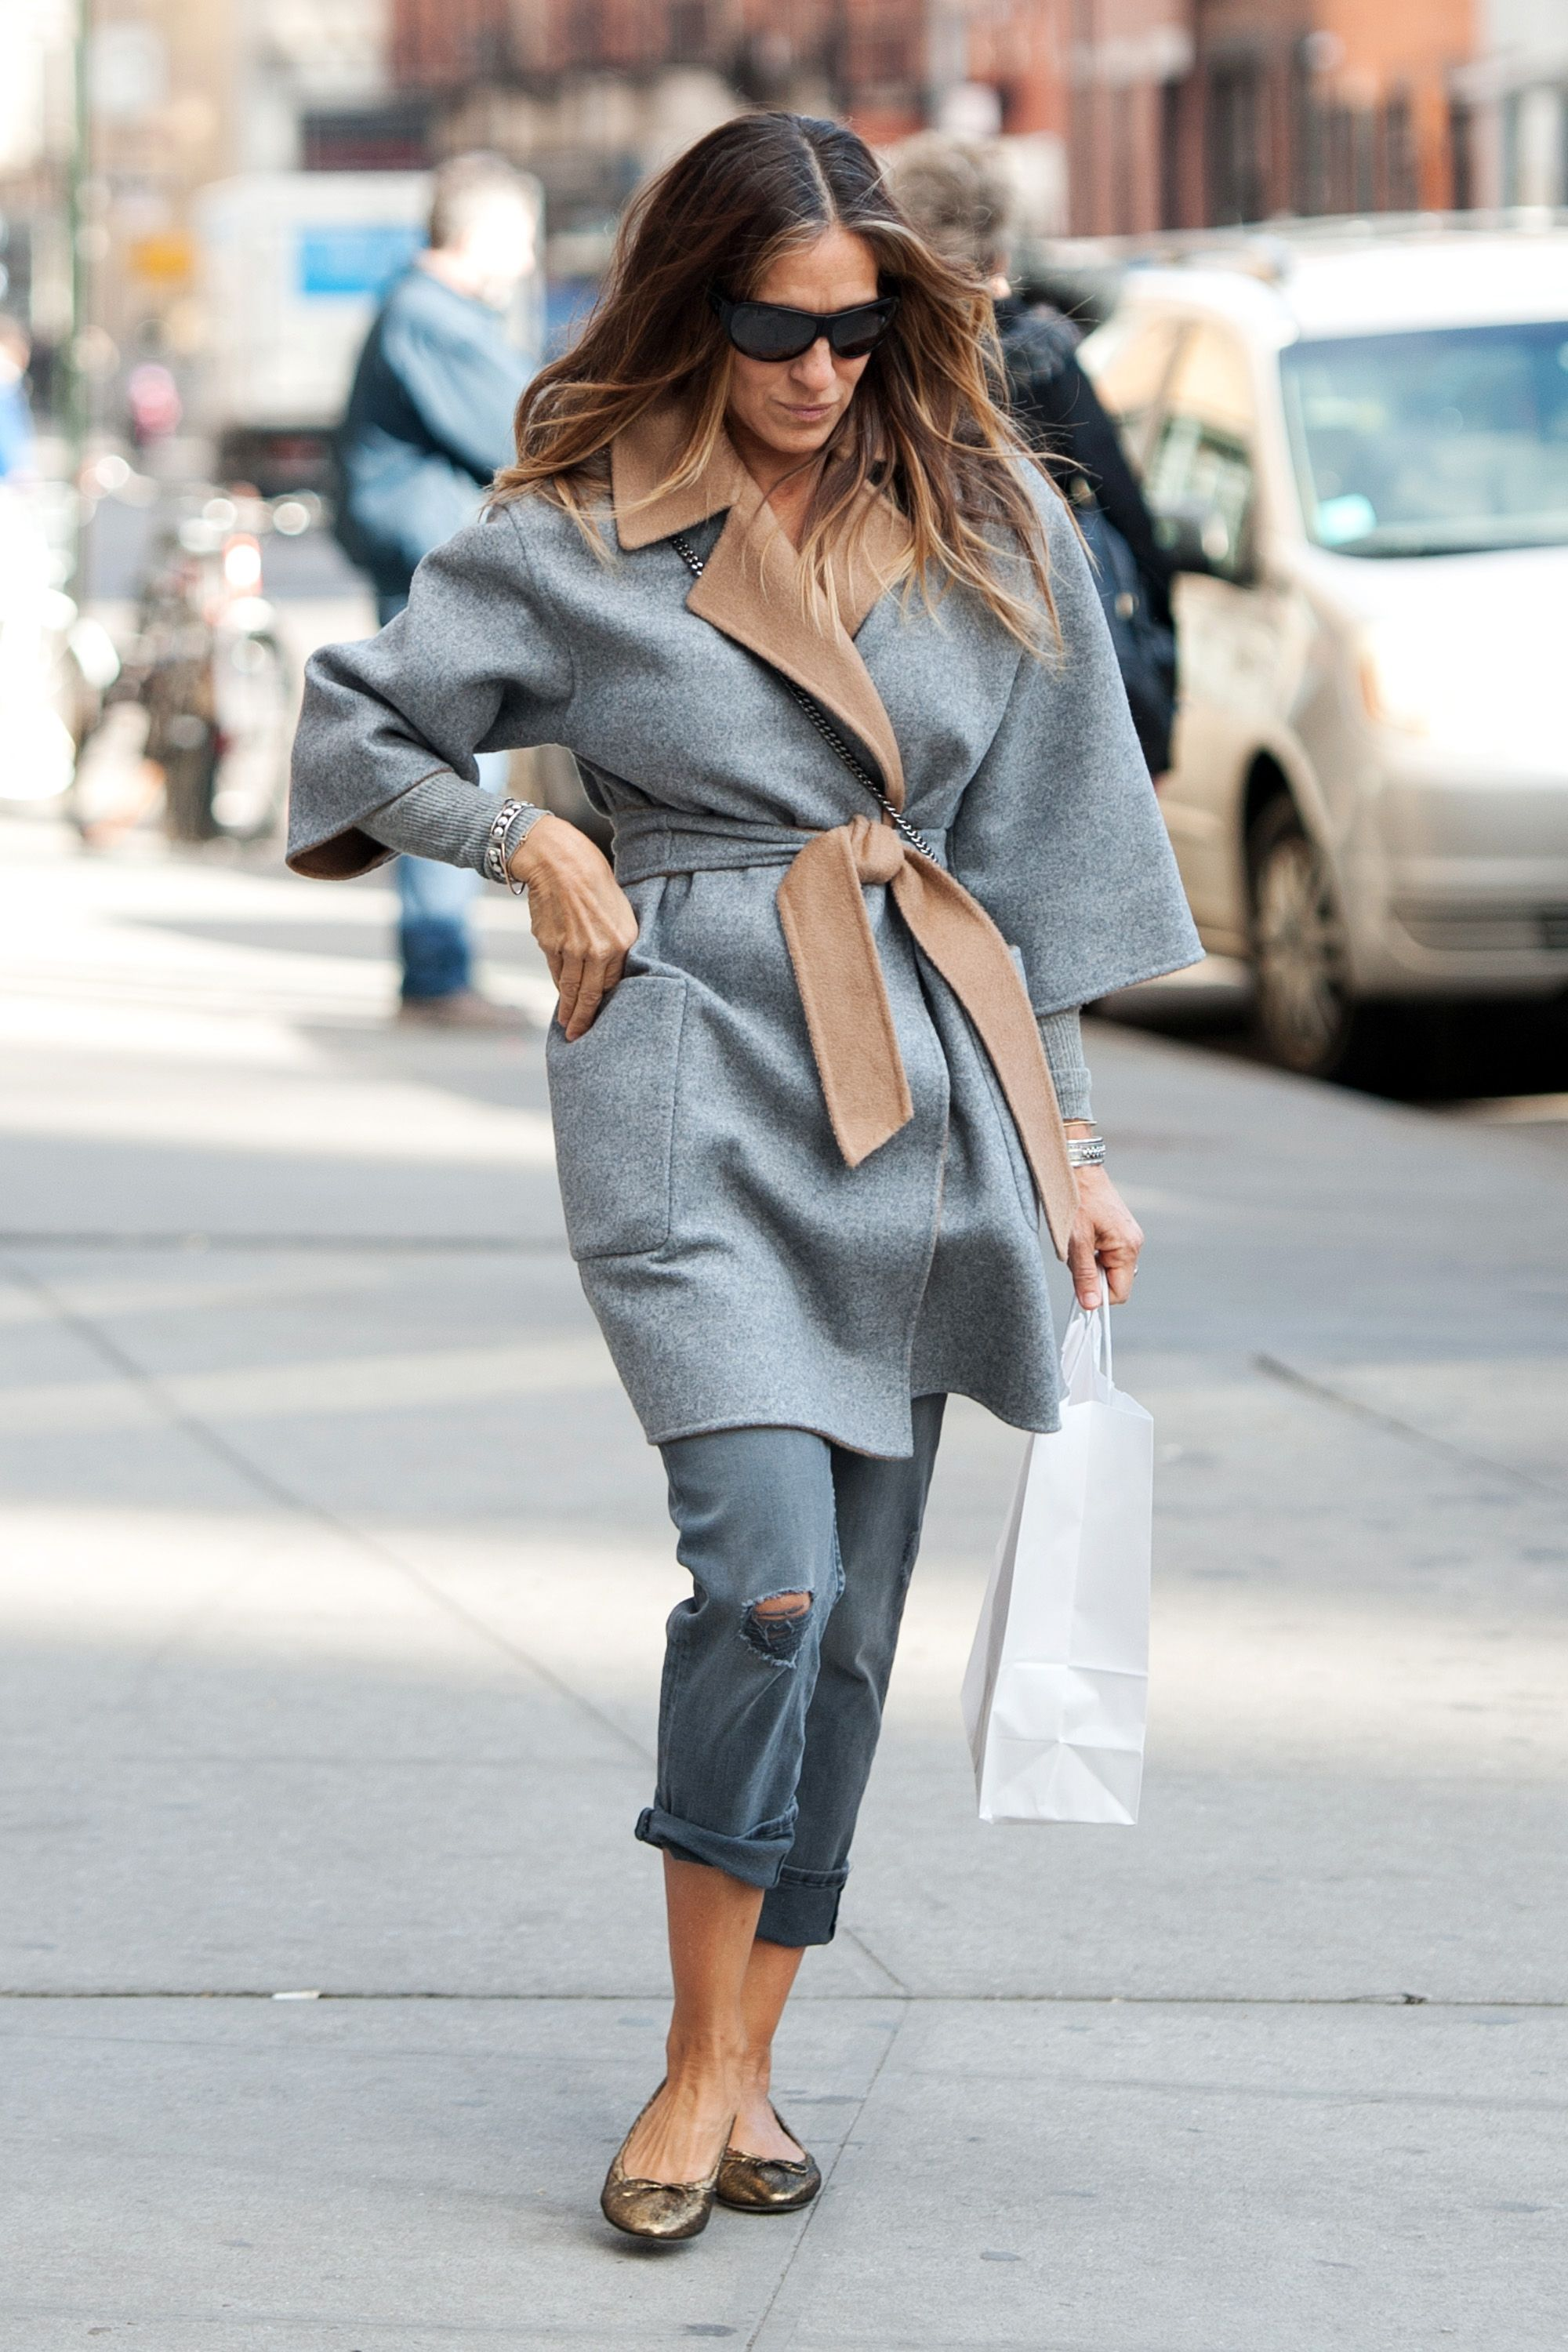 Sarah Jessica Parker nails transitional dressing in this monochromatic look with grey Mother jeans and robe coat. - HarpersBAZAAR.com